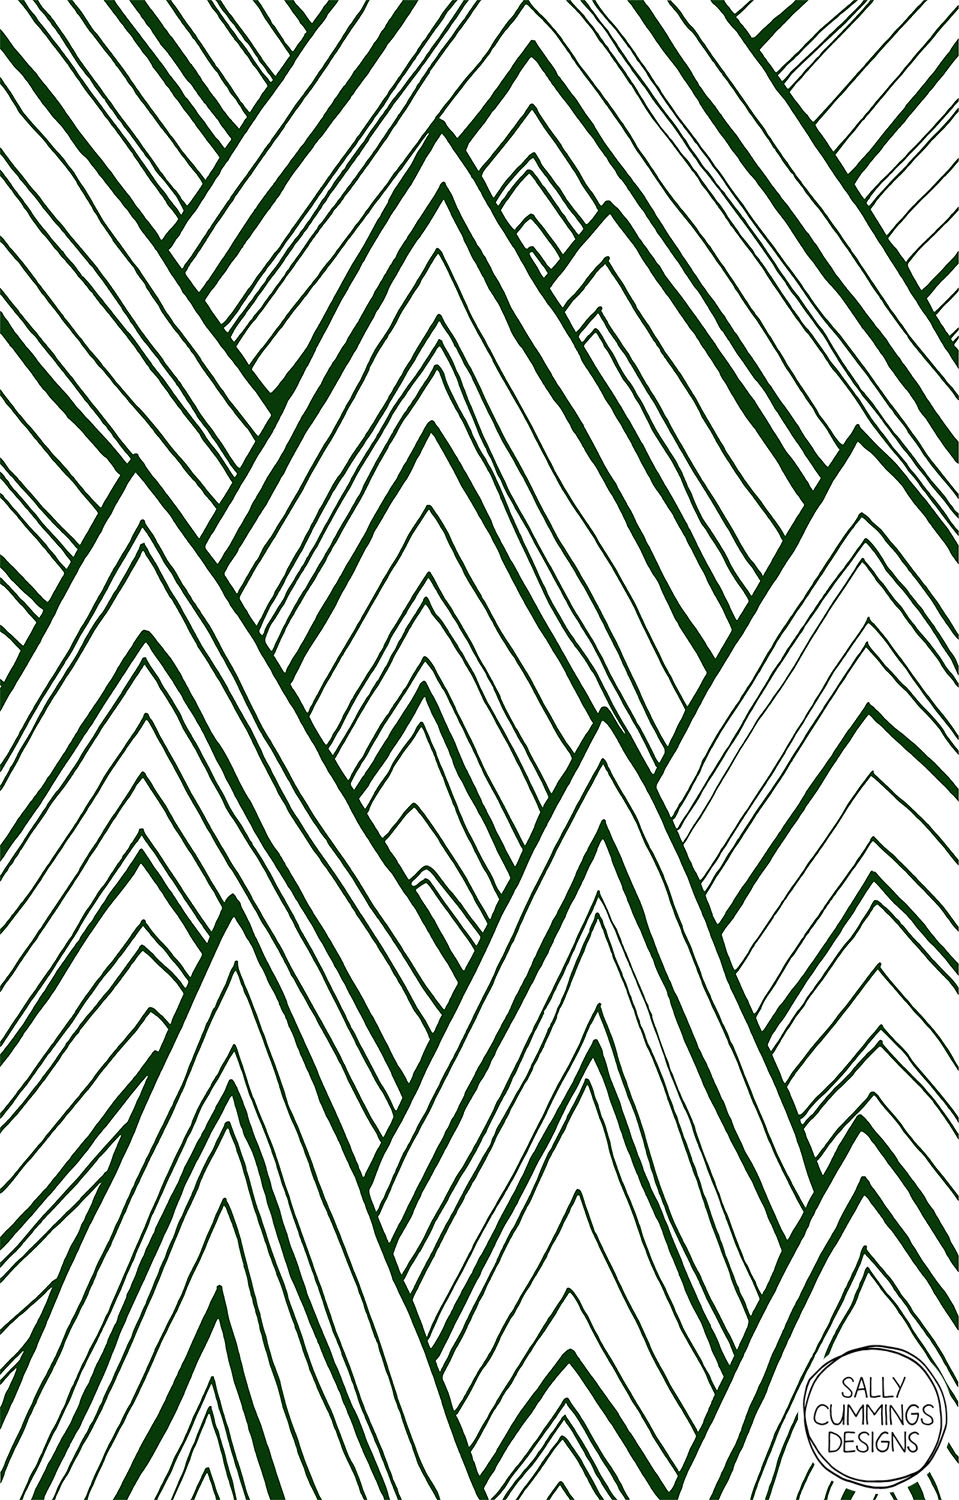 Sally Cummings Designs - Stripe Mountains design (dark green)